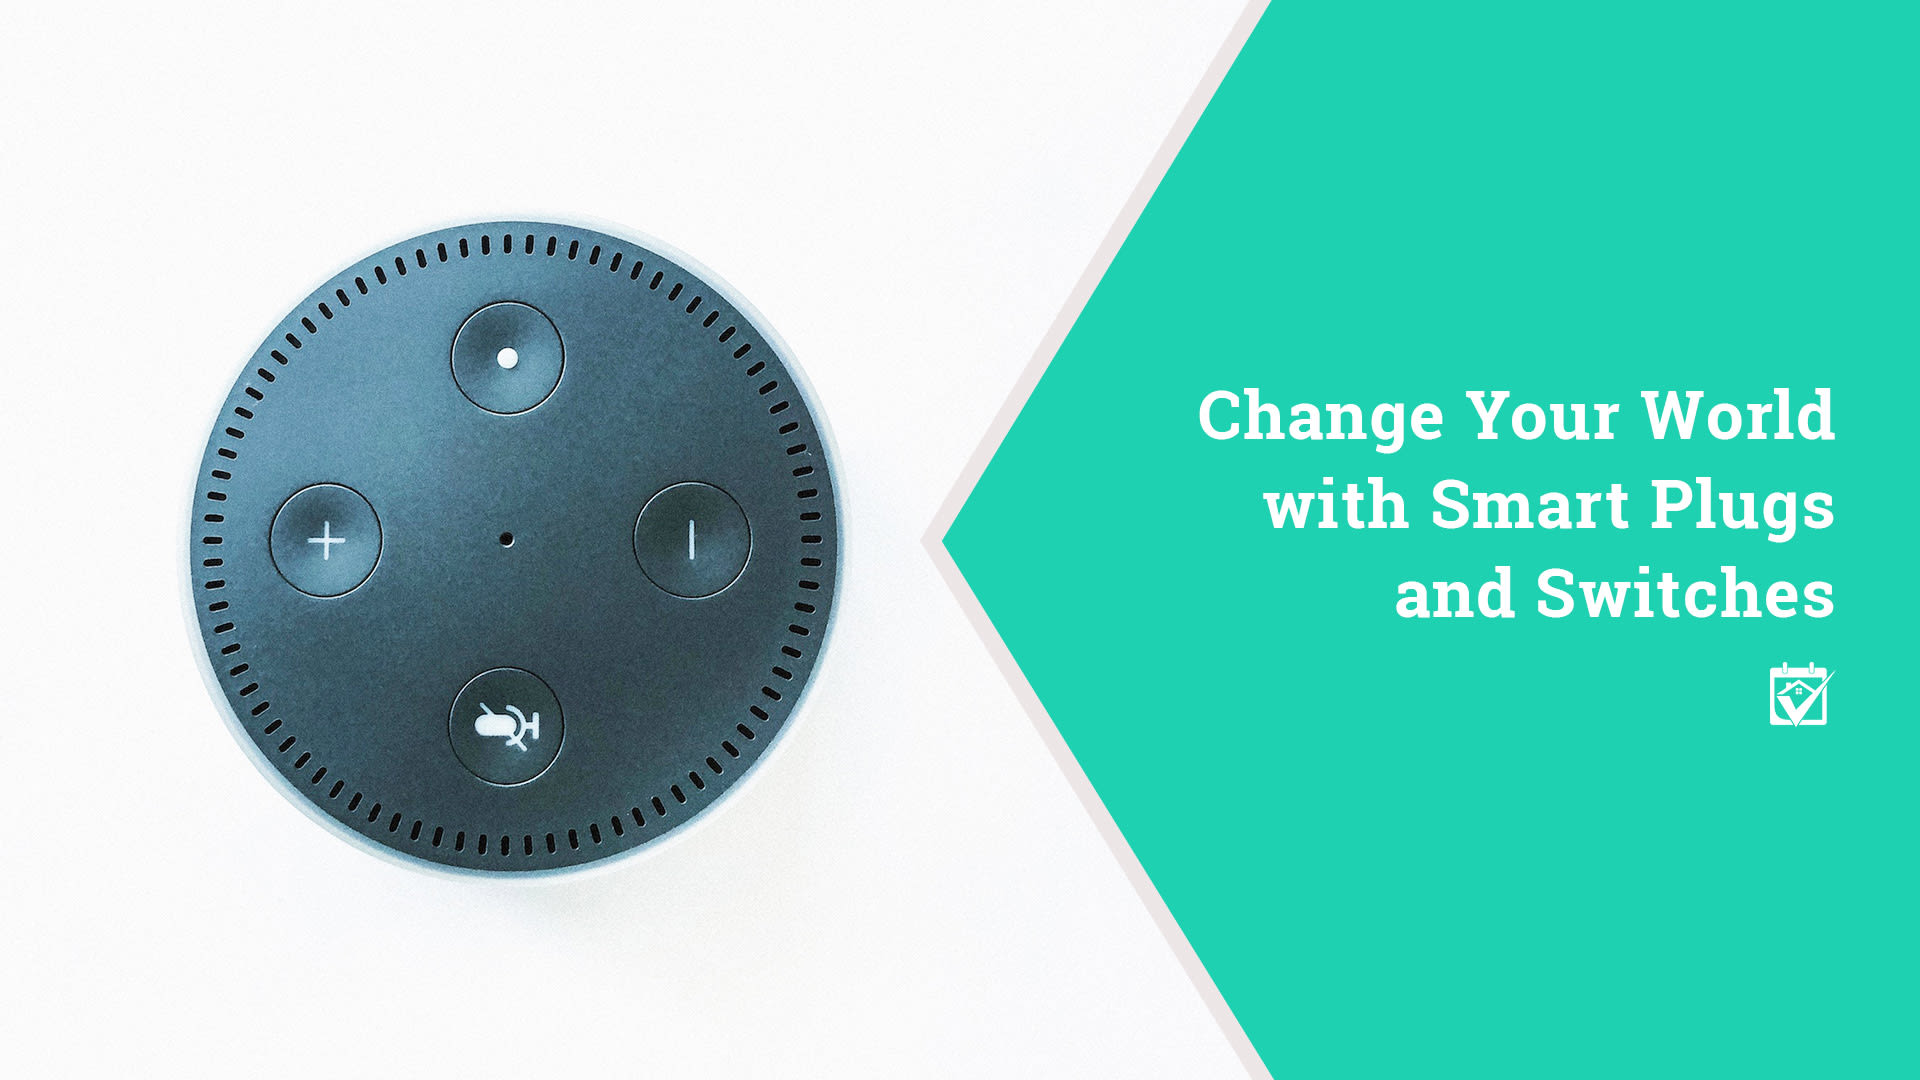 Change Your World with Smart Plugs and Switches